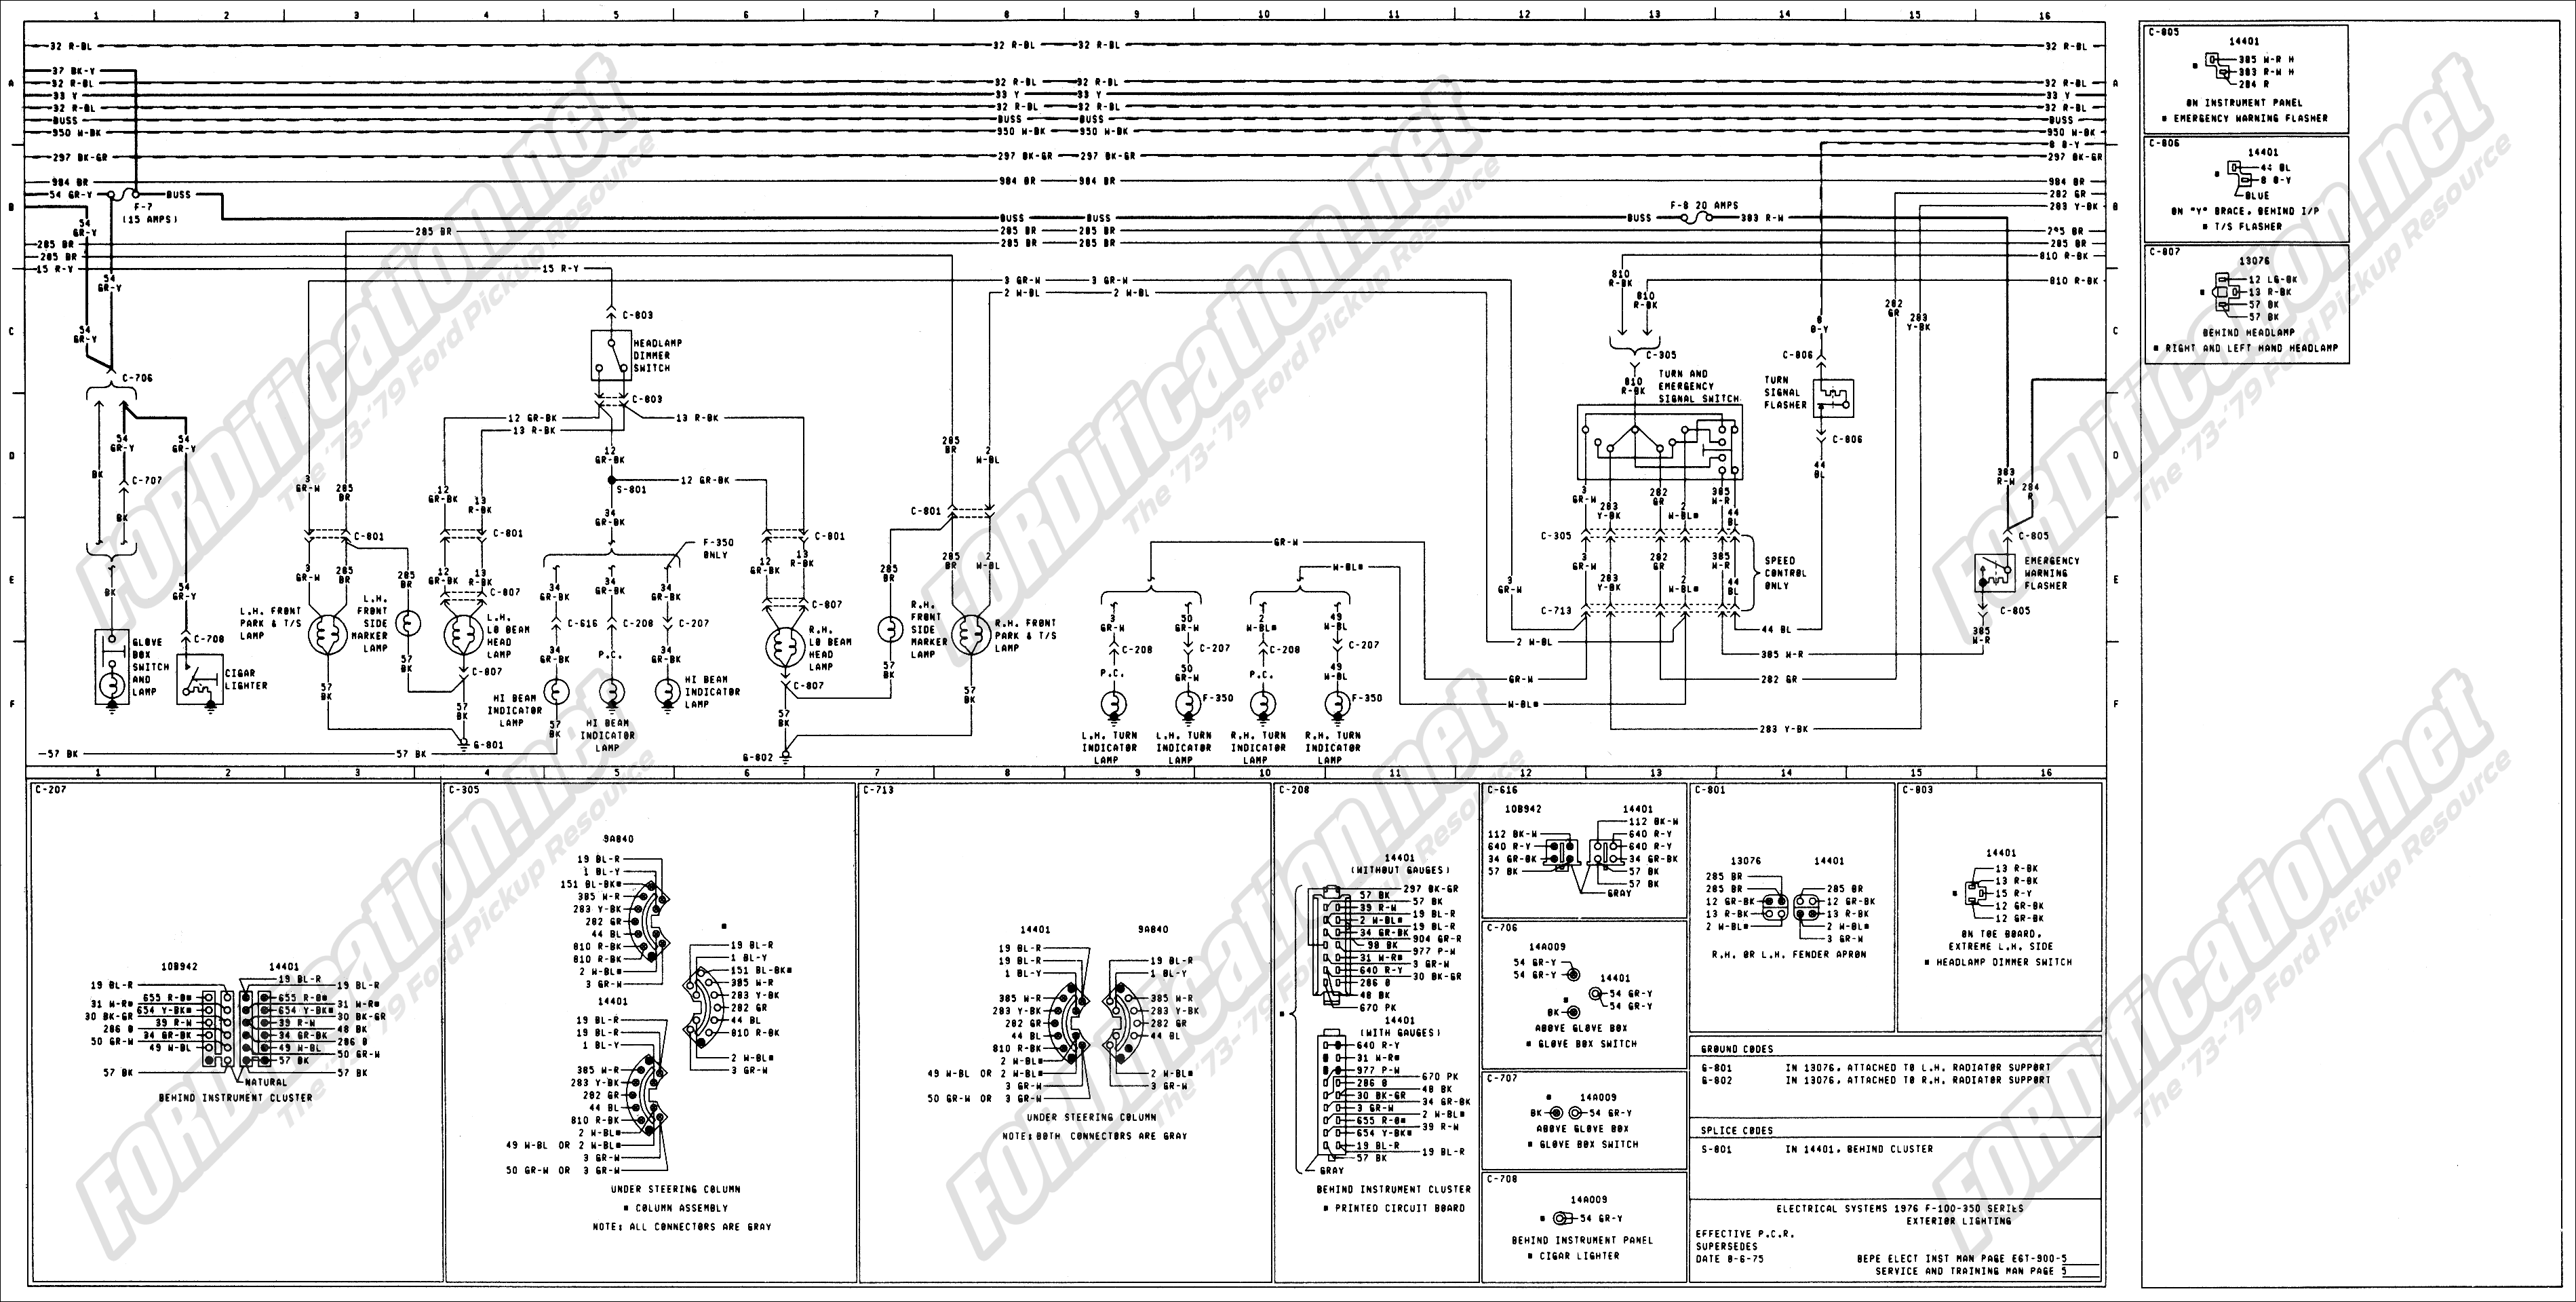 77 Dodge D100 Wiring Diagram Schematics Data Diagrams 1977 Warlock 76 Ford Truck Detailed Rh Antonartgallery Com 1976 I Barrel Carburator